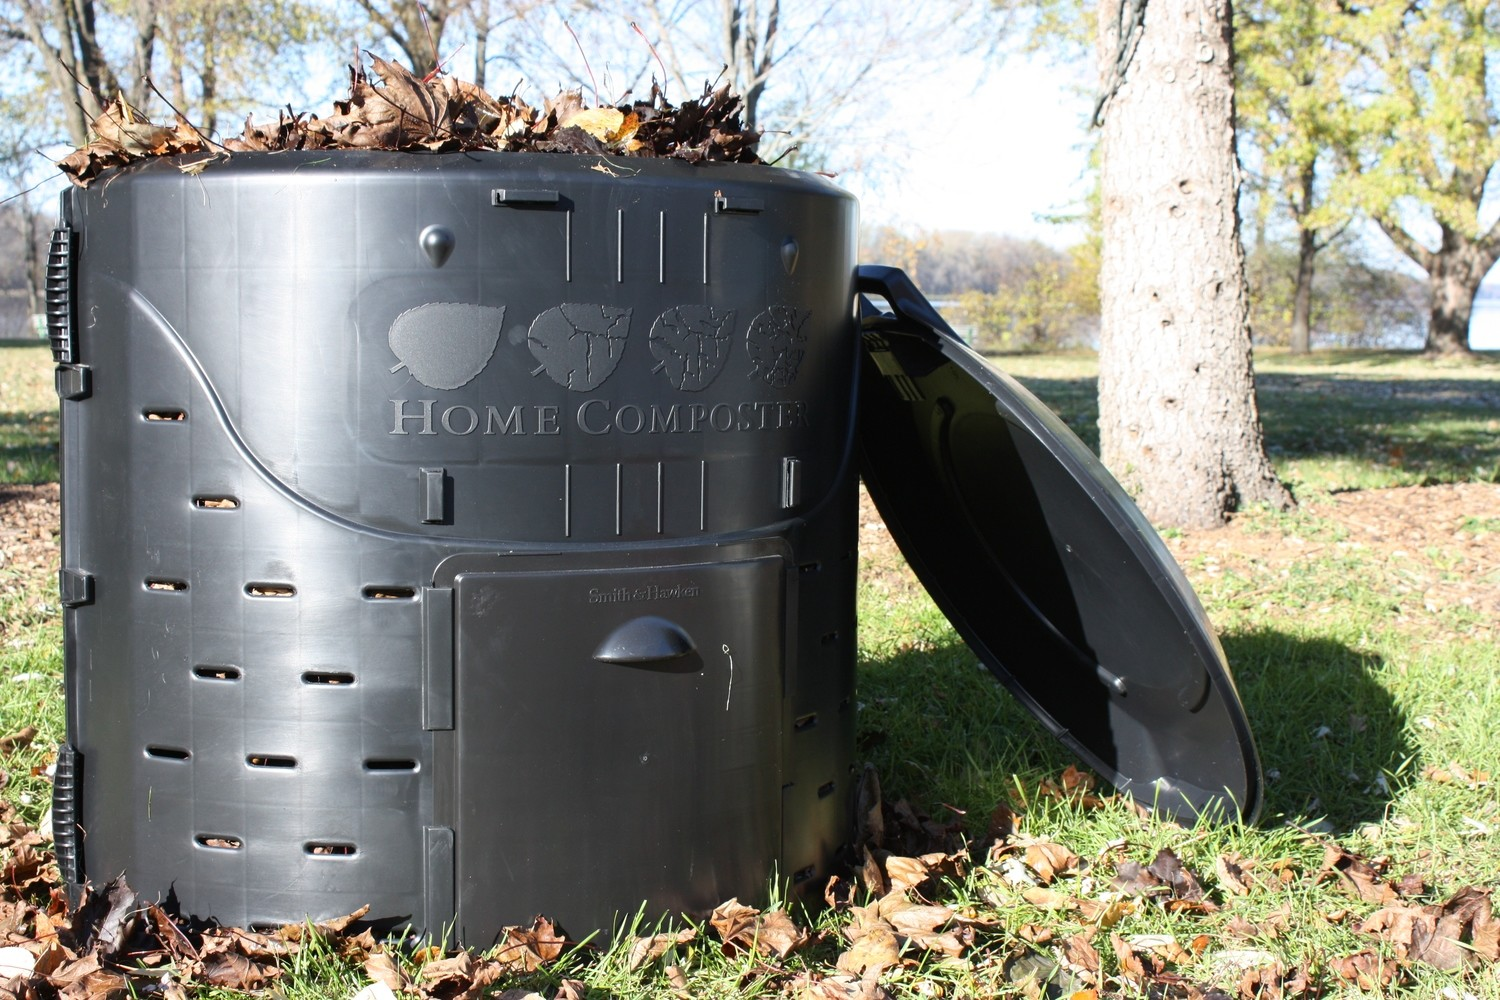 Blue Earth County Home Composter